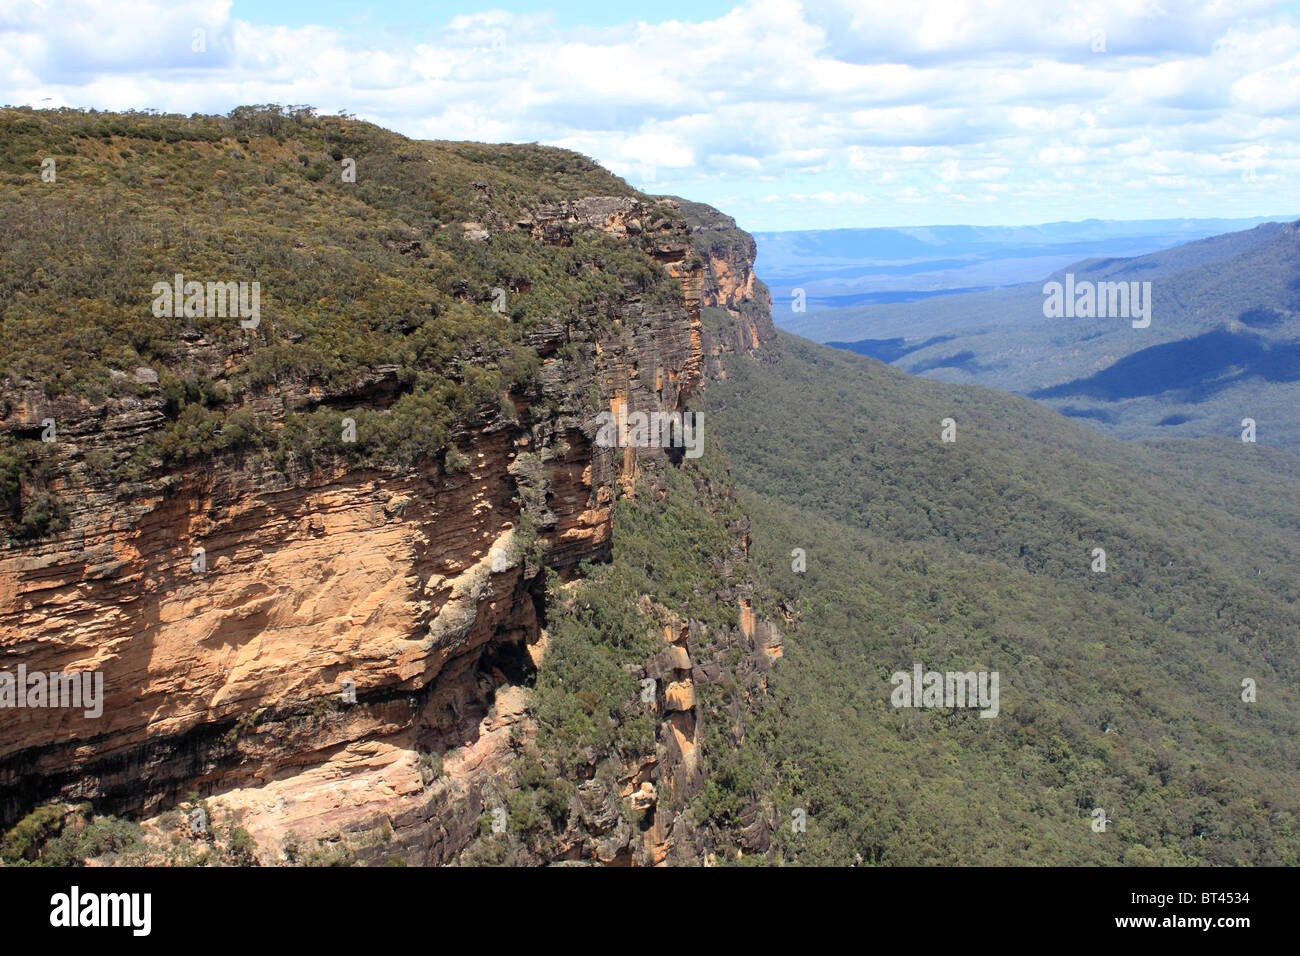 King's Tableland seen from Prince's Rock Lookout, Blue Mountains National Park, New South Wales, eastern - Stock Image